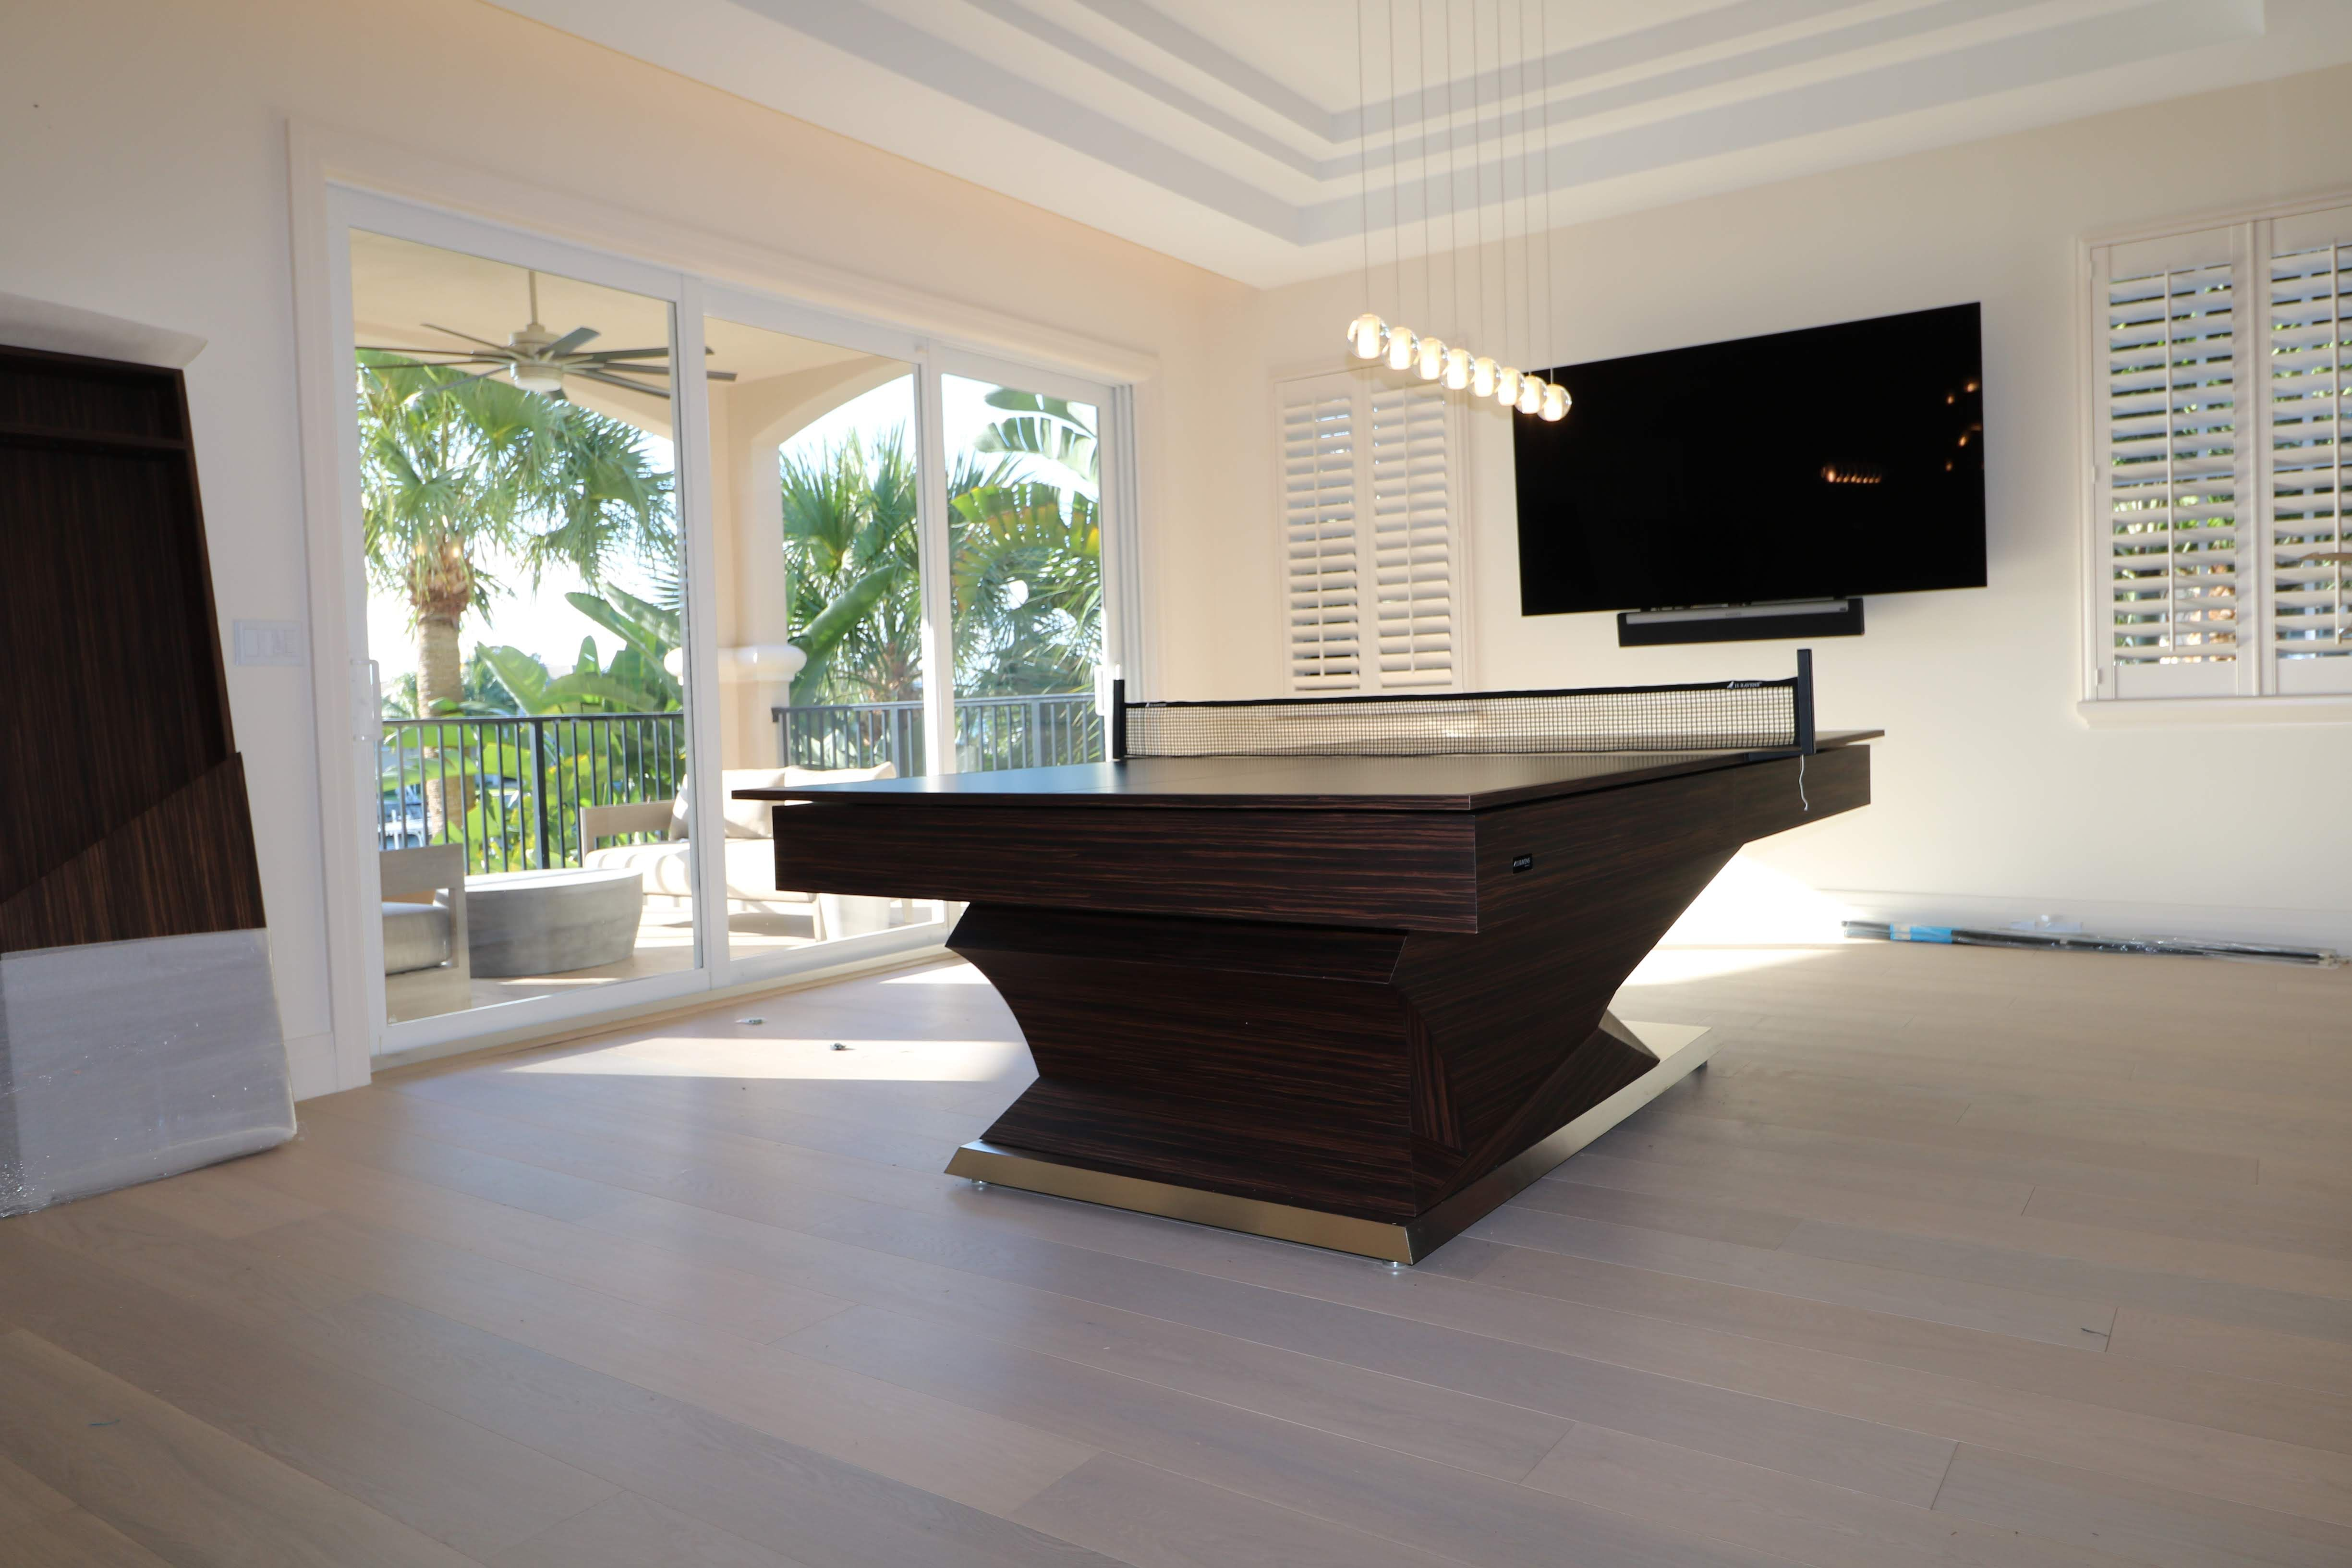 This Model Is The 11 Ravens Namesake Thus The Svelte Lines And Superlative Form Of This Design Envelopes You Into A Silhouette That Is Remin Modern Pool Table